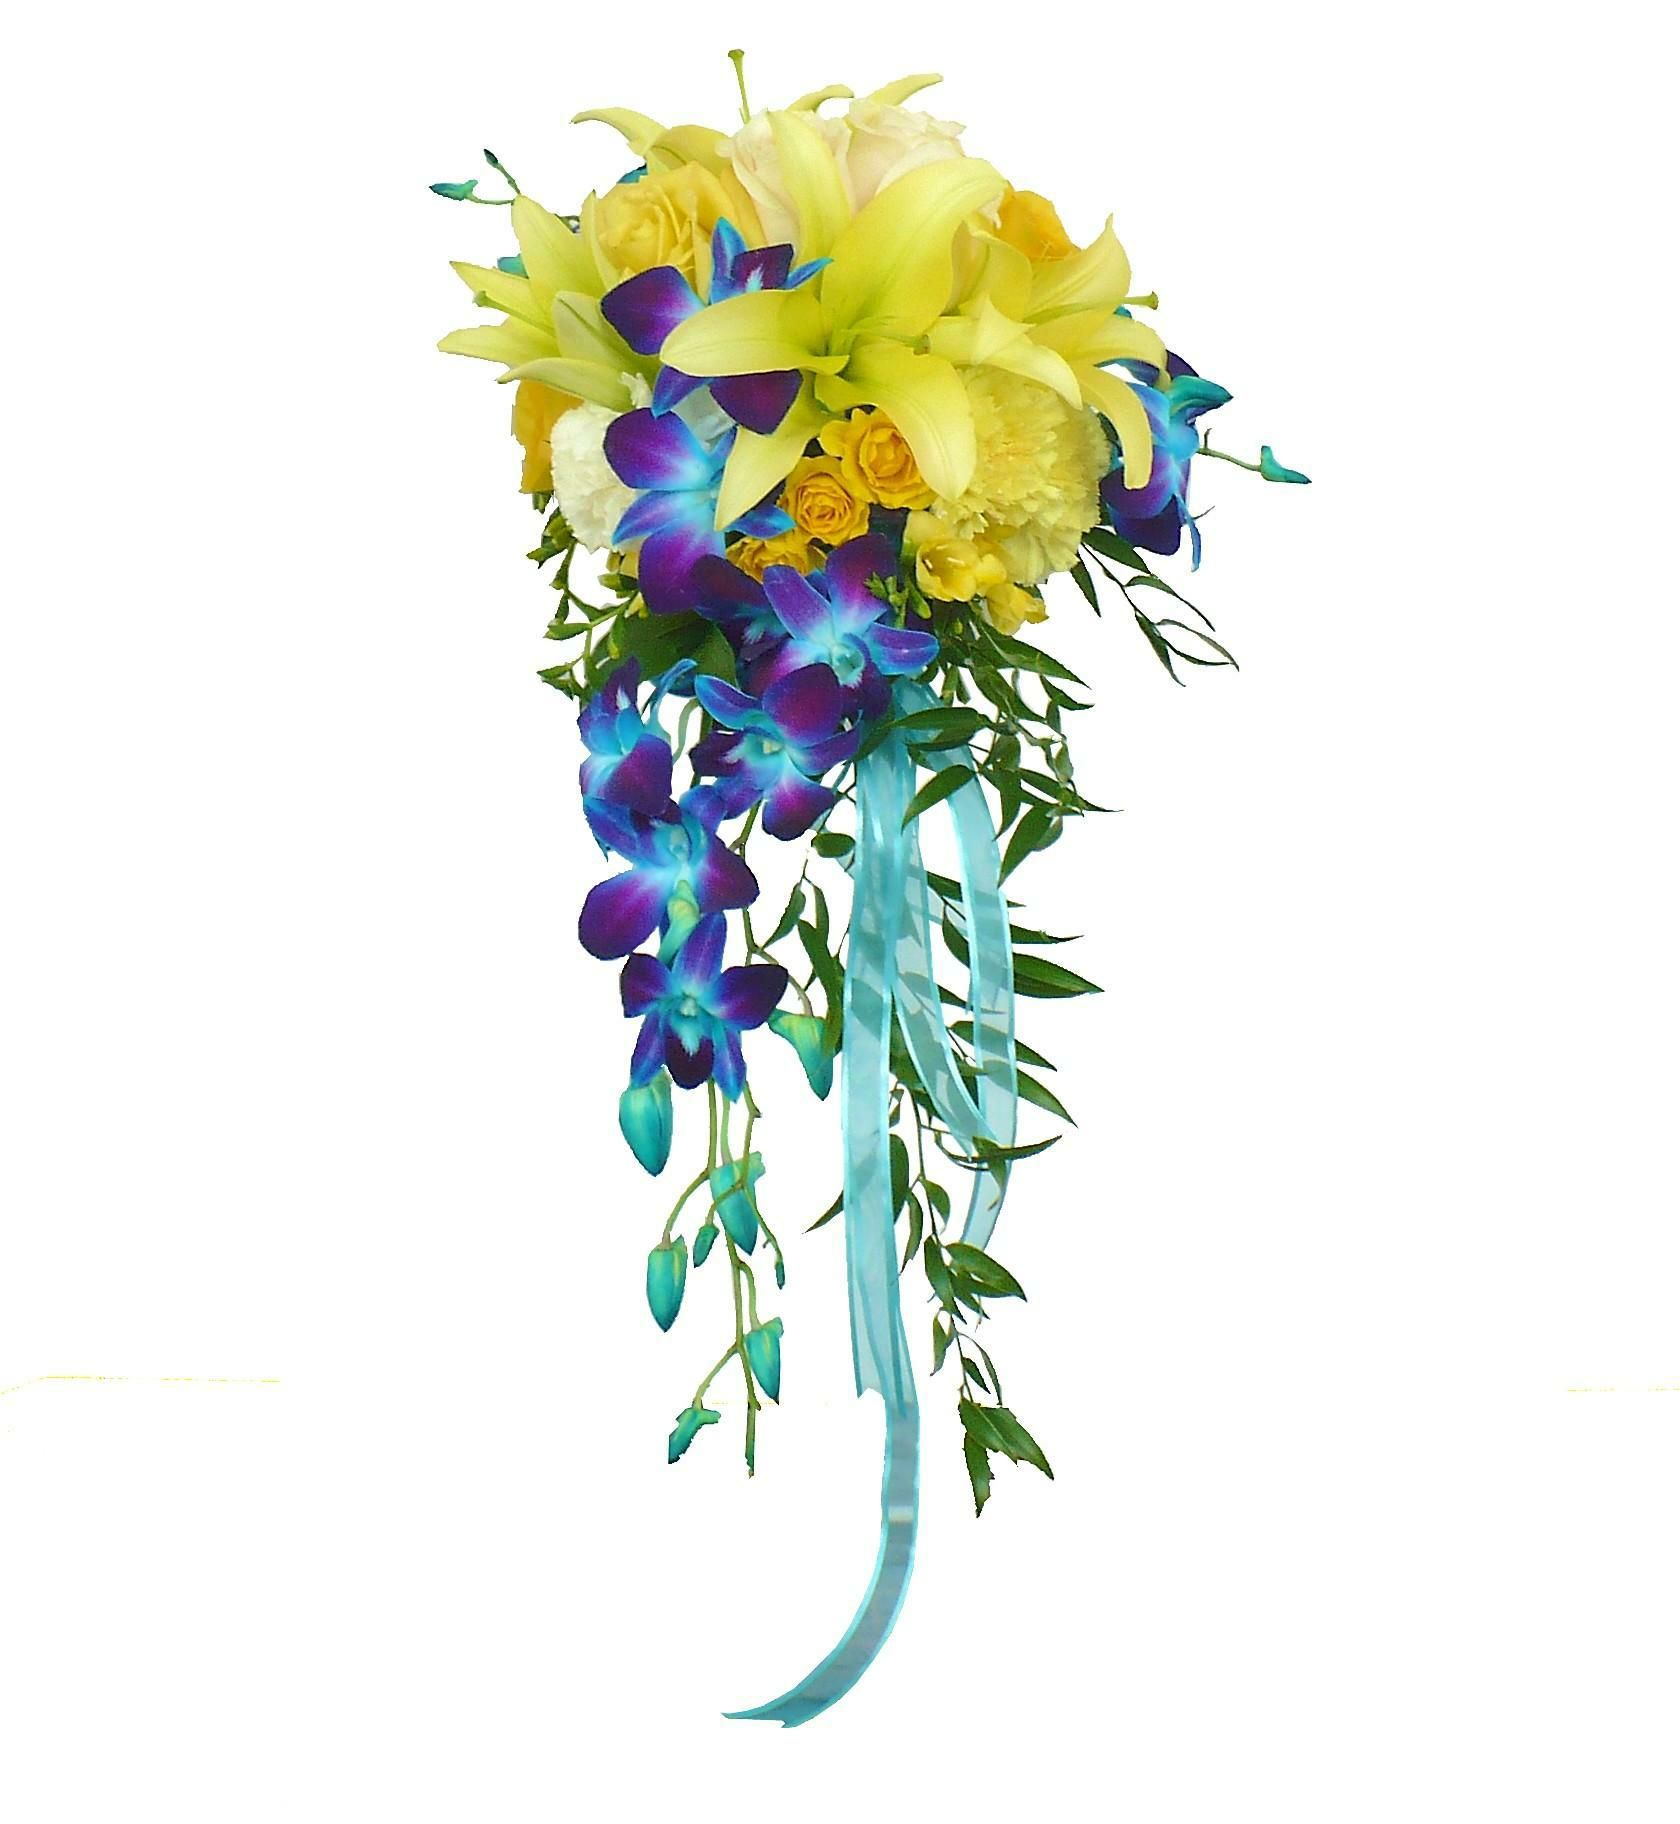 Dyed dendrobium orchid bridal bouquets blue orchid bridal bouquet dyed dendrobium orchid bridal bouquets blue orchid bridal bouquet 15495 send flowers halifax izmirmasajfo Choice Image